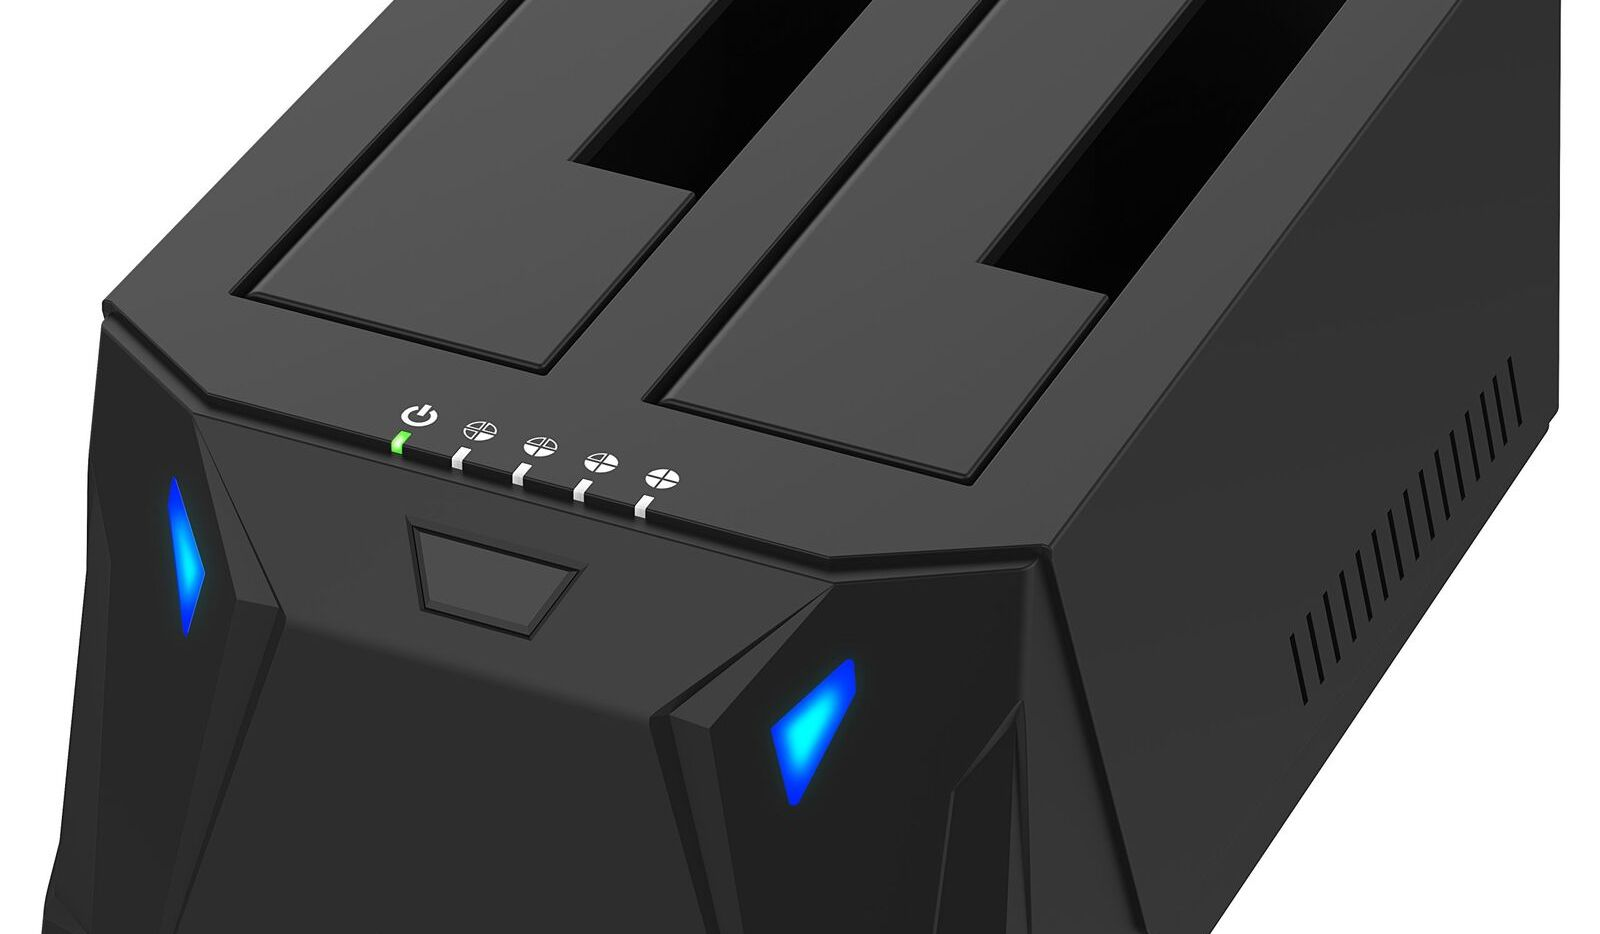 This Sabrent hard drive dock can read bare drives and even copy the contents to another drive.